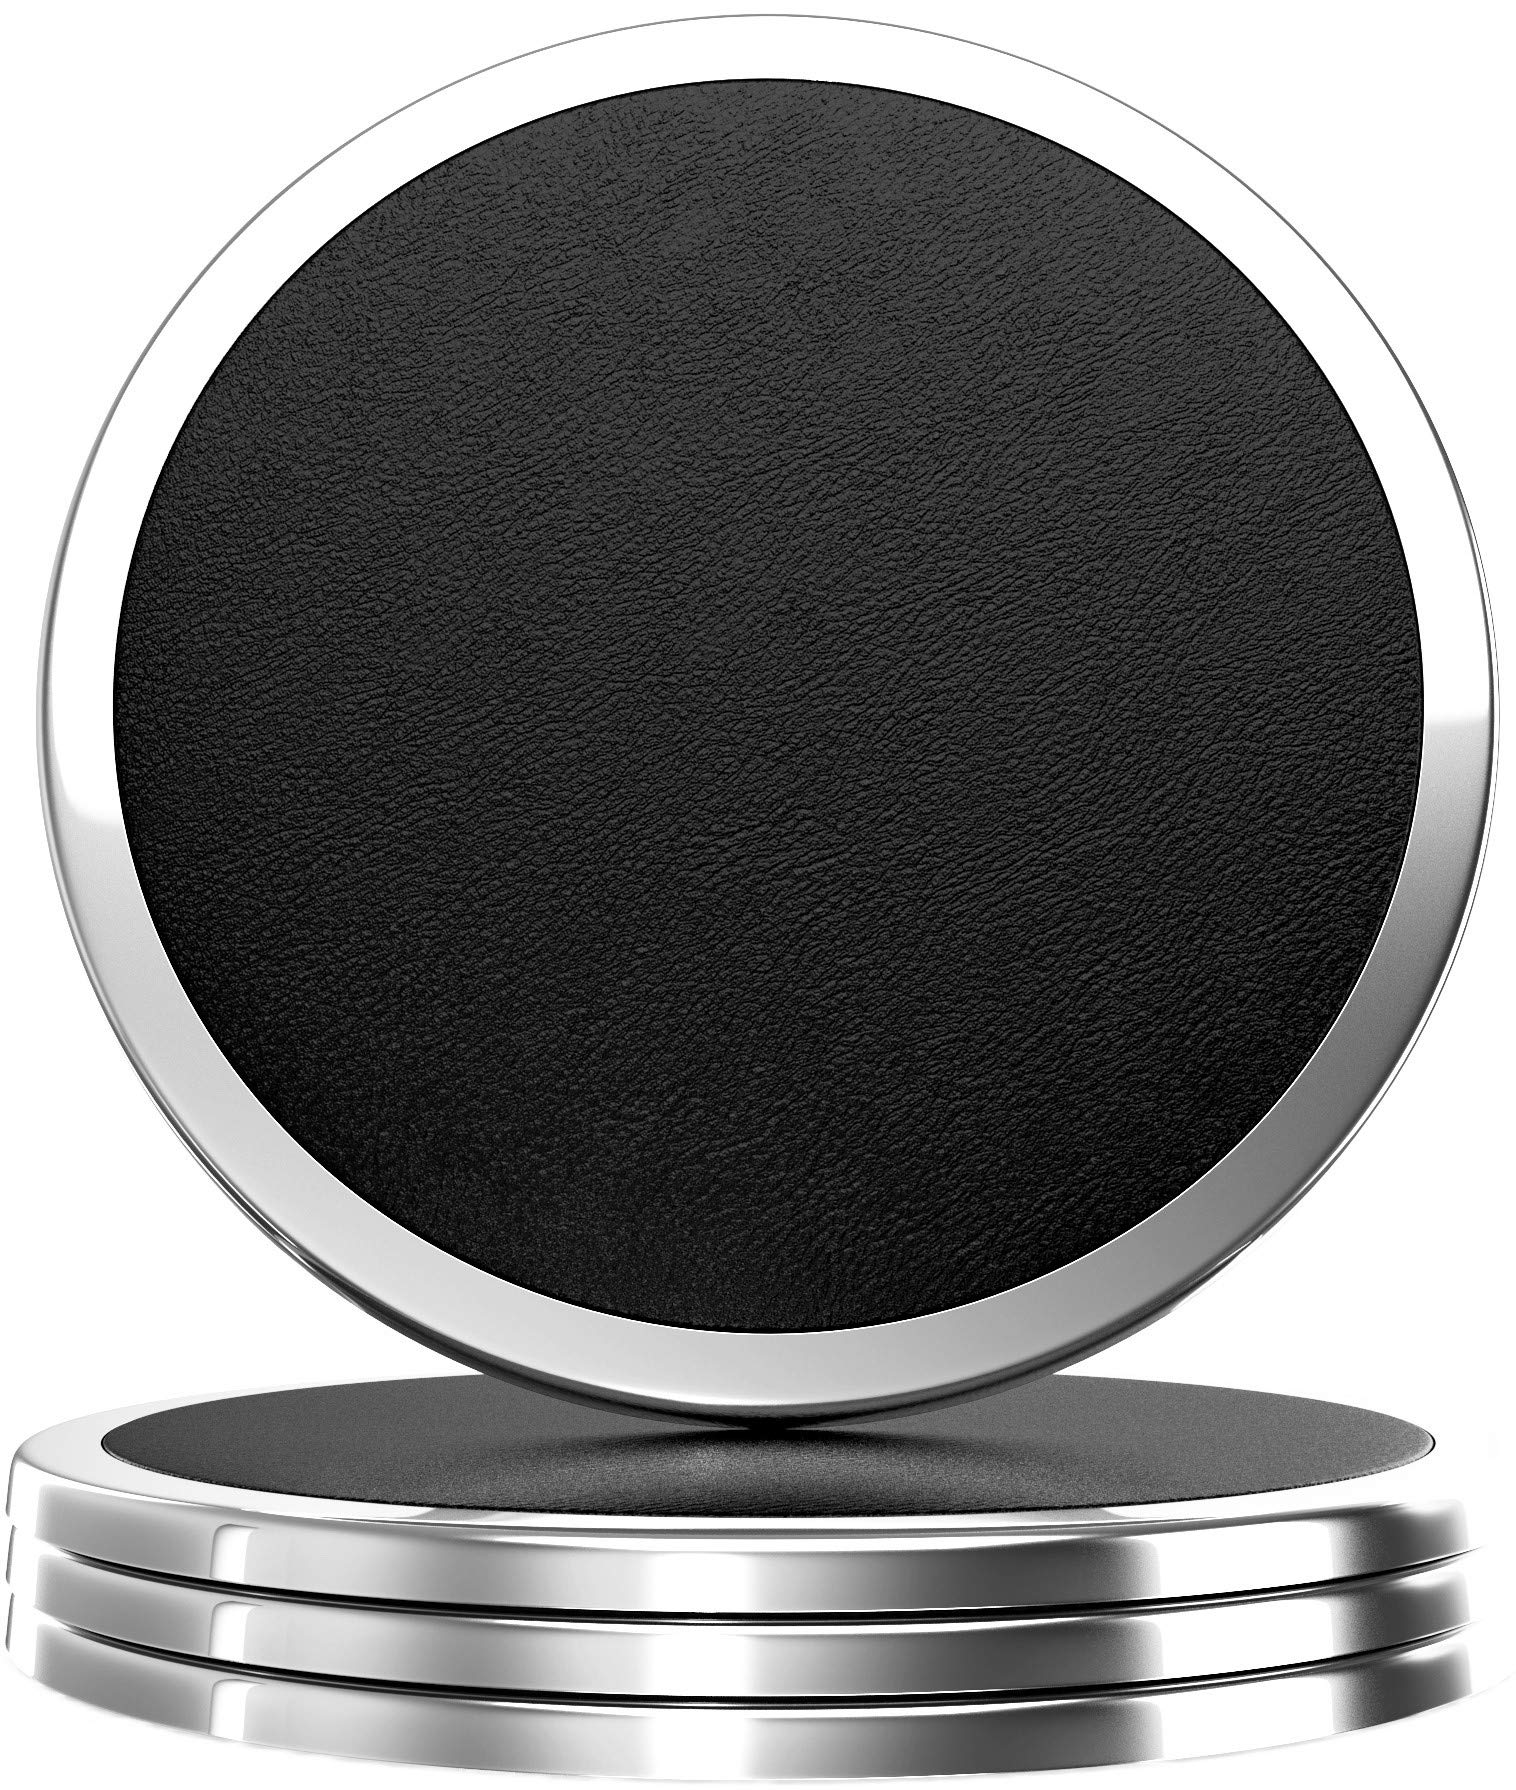 YouShop Luxury Coasters for Drinks - Premium Metal, Black Leather, Velvet Base | Contemporary and Clean Style, Modern Coaster Set for Living Room, Kitchen, or Office Cup Coasters | Protect Furniture